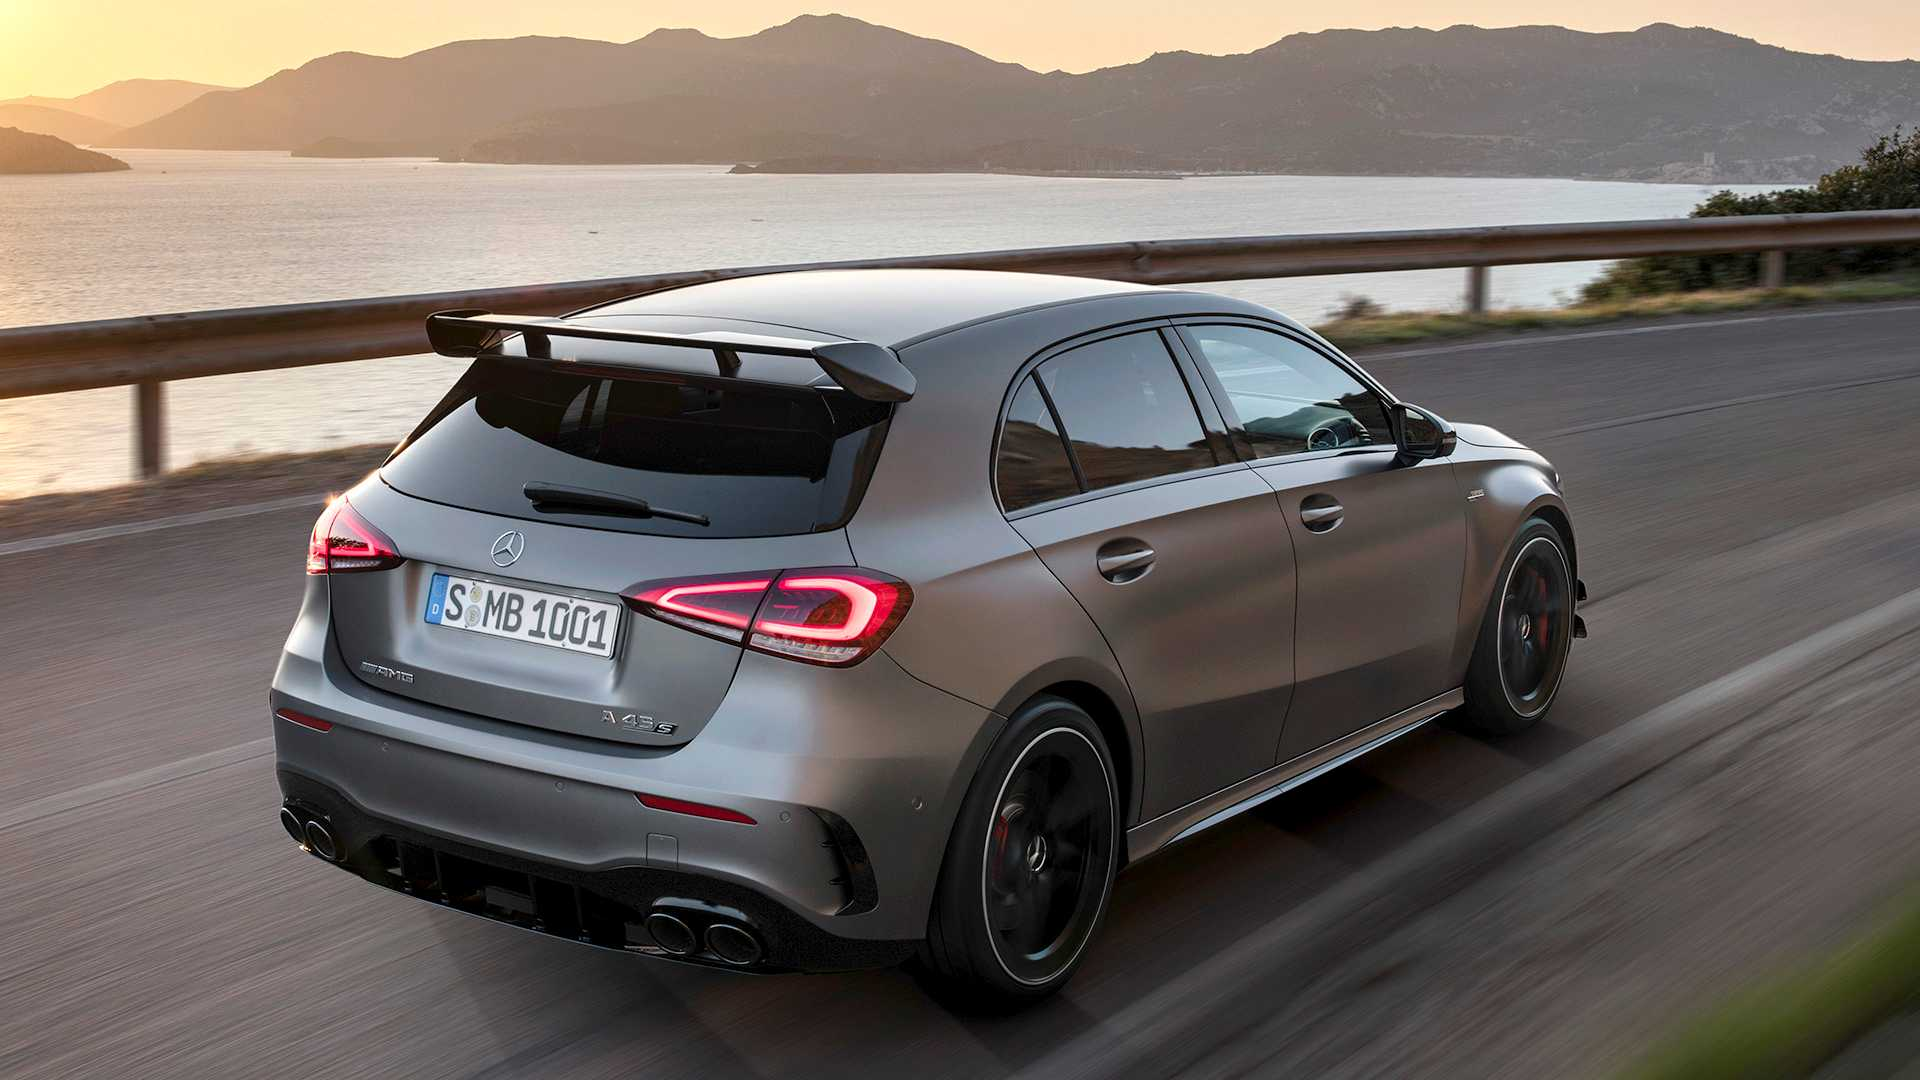 Mercedes Amg A45 S And Cla 45 S Storm Into Goodwood With 416 Hp